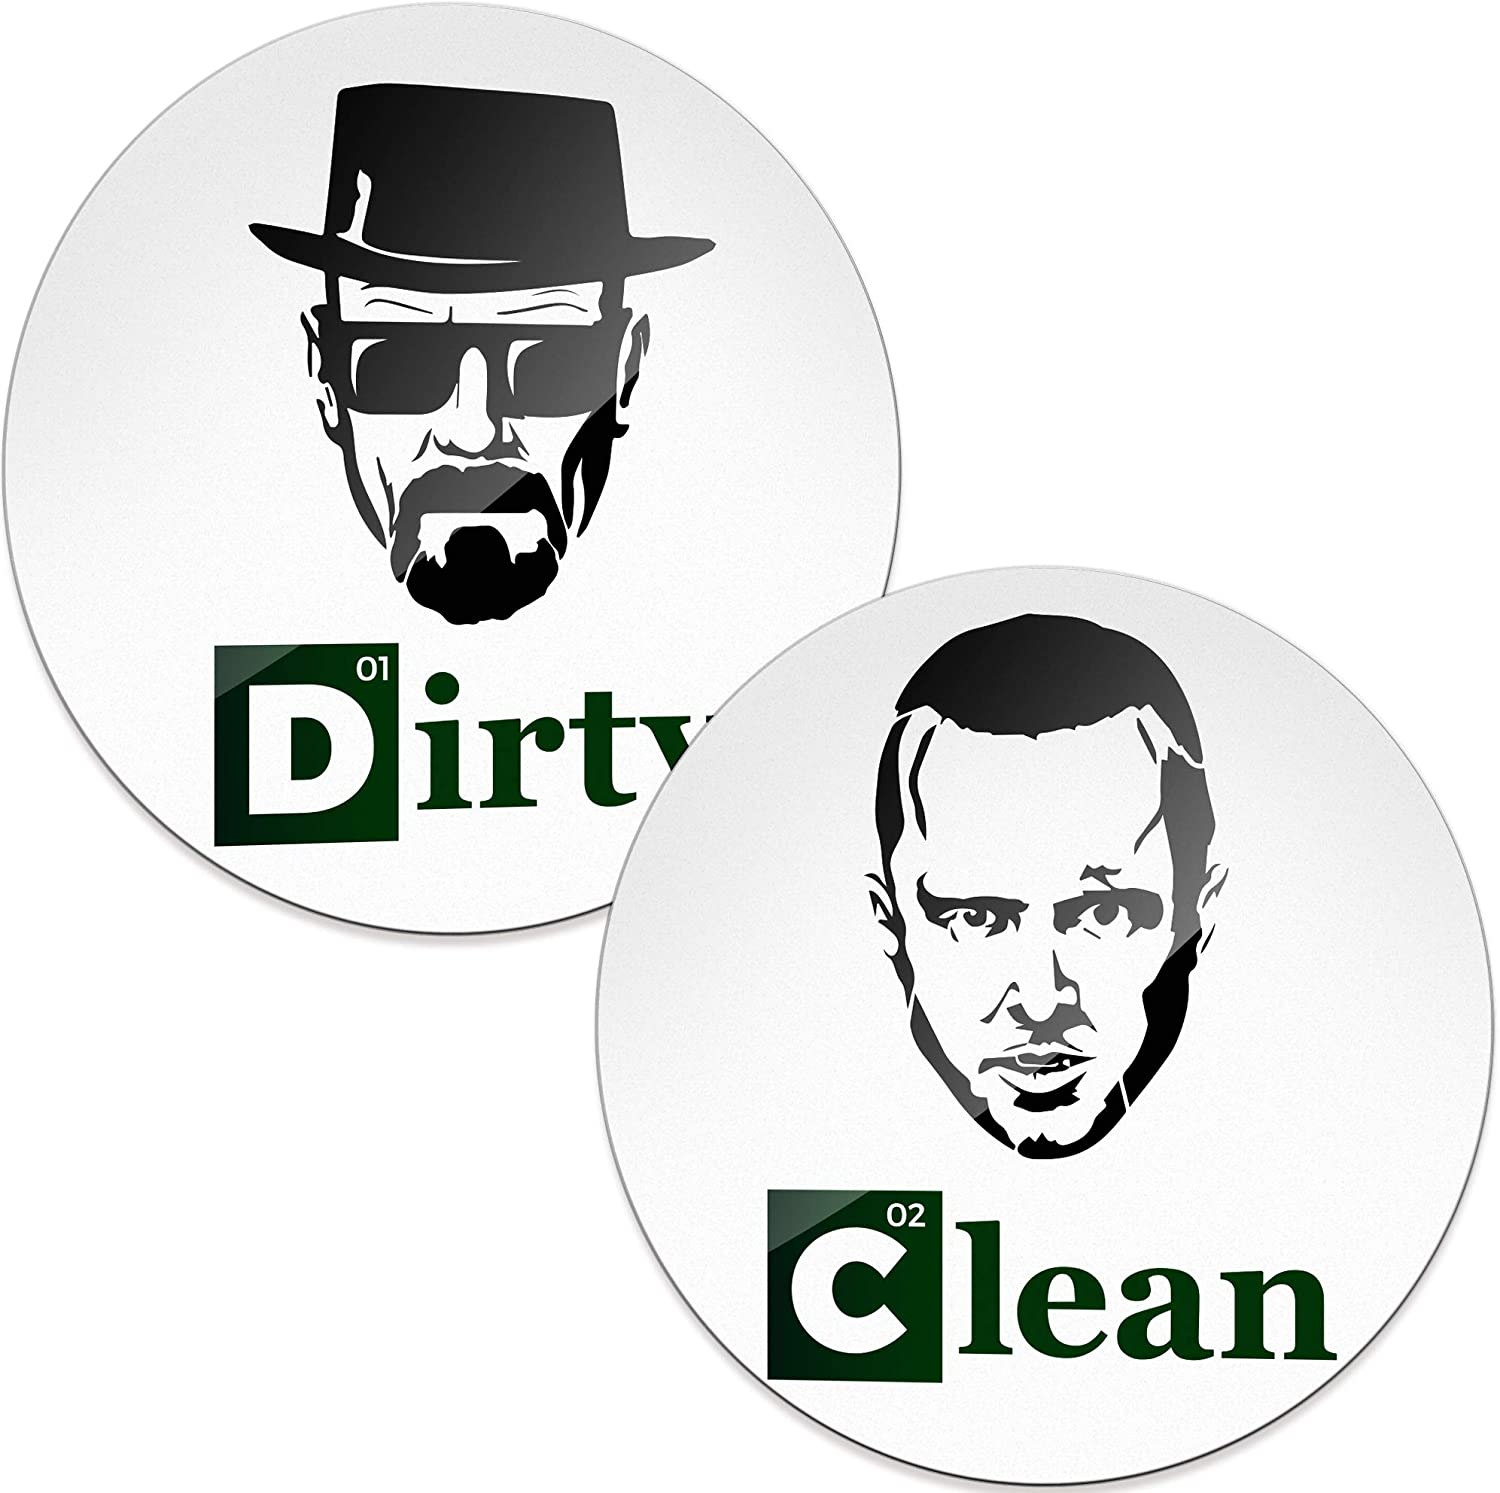 Dishwasher Clean Dirty Magnet Sign - Funny Housewarming Gifts New Home - Great Husband Birthday Gifts from Wife, Gifts for Dad and Mom from Son and Daughter - Clean/Dirty Dishwasher Magnet